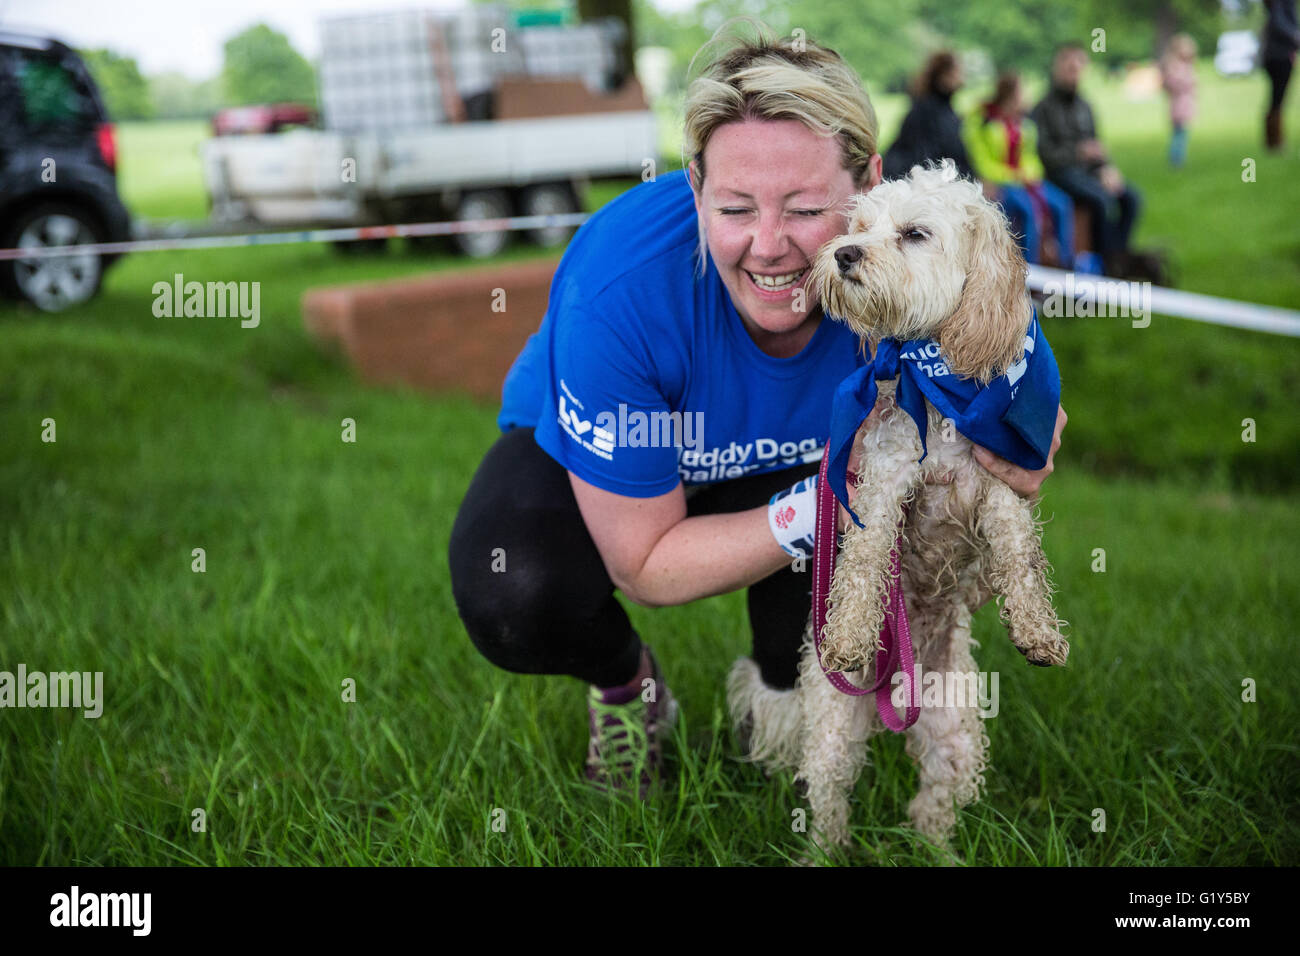 A Dog Competing In The Muddy Challenge Obstacle Run Windsor Great Park Aid Of Battersea Dogs And Cats Home Credit Mark